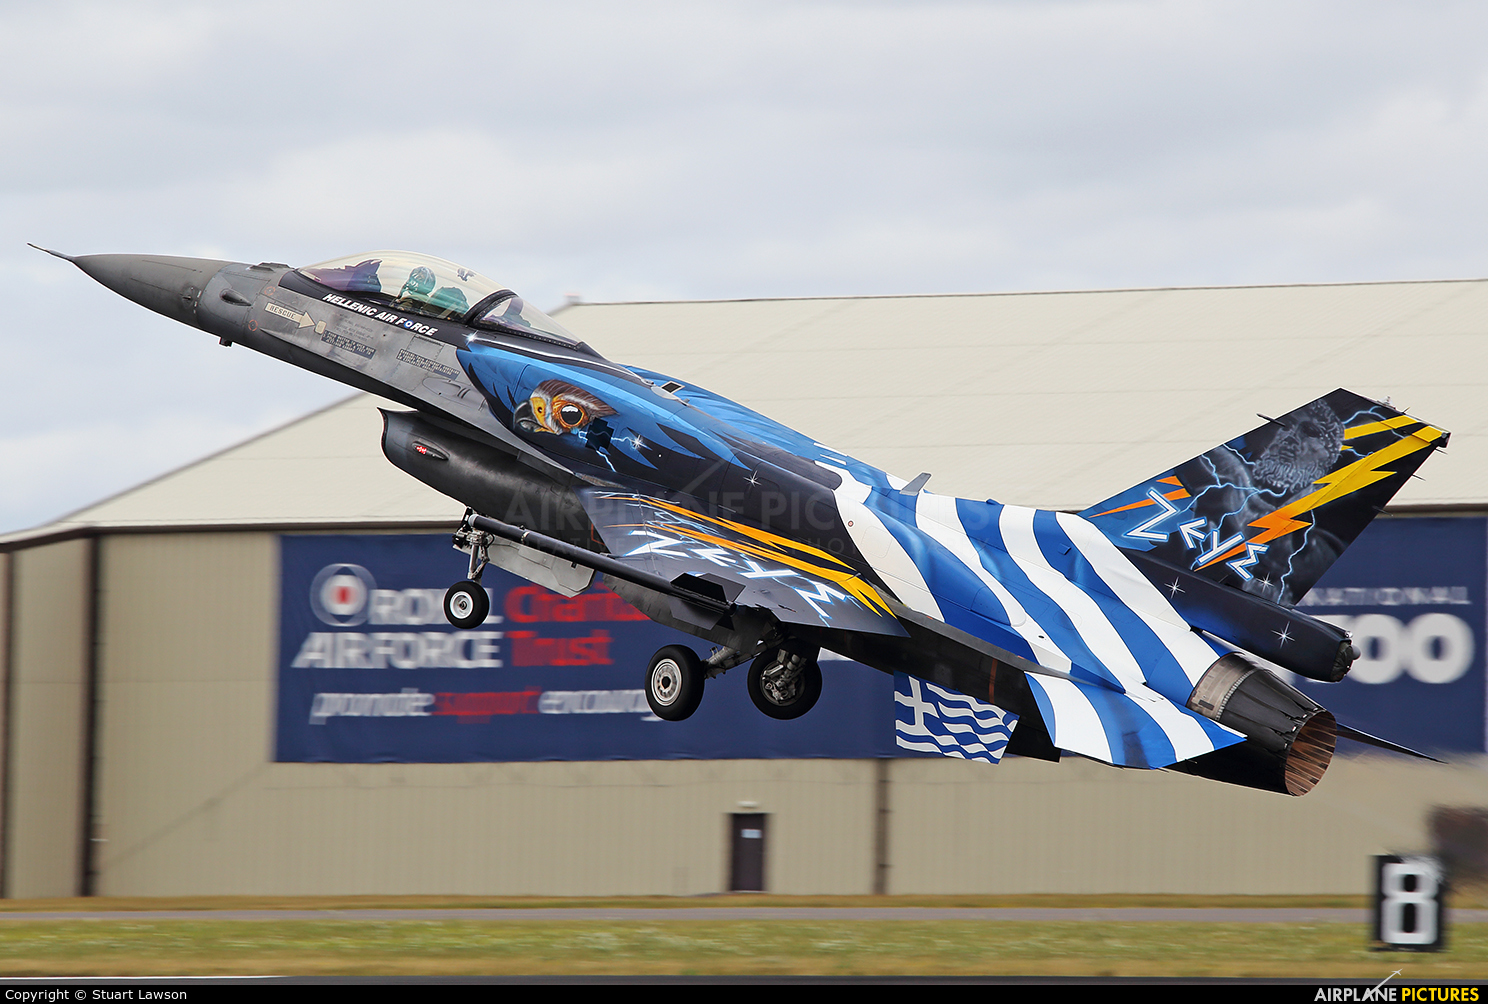 Greece - Hellenic Air Force 523 aircraft at Fairford